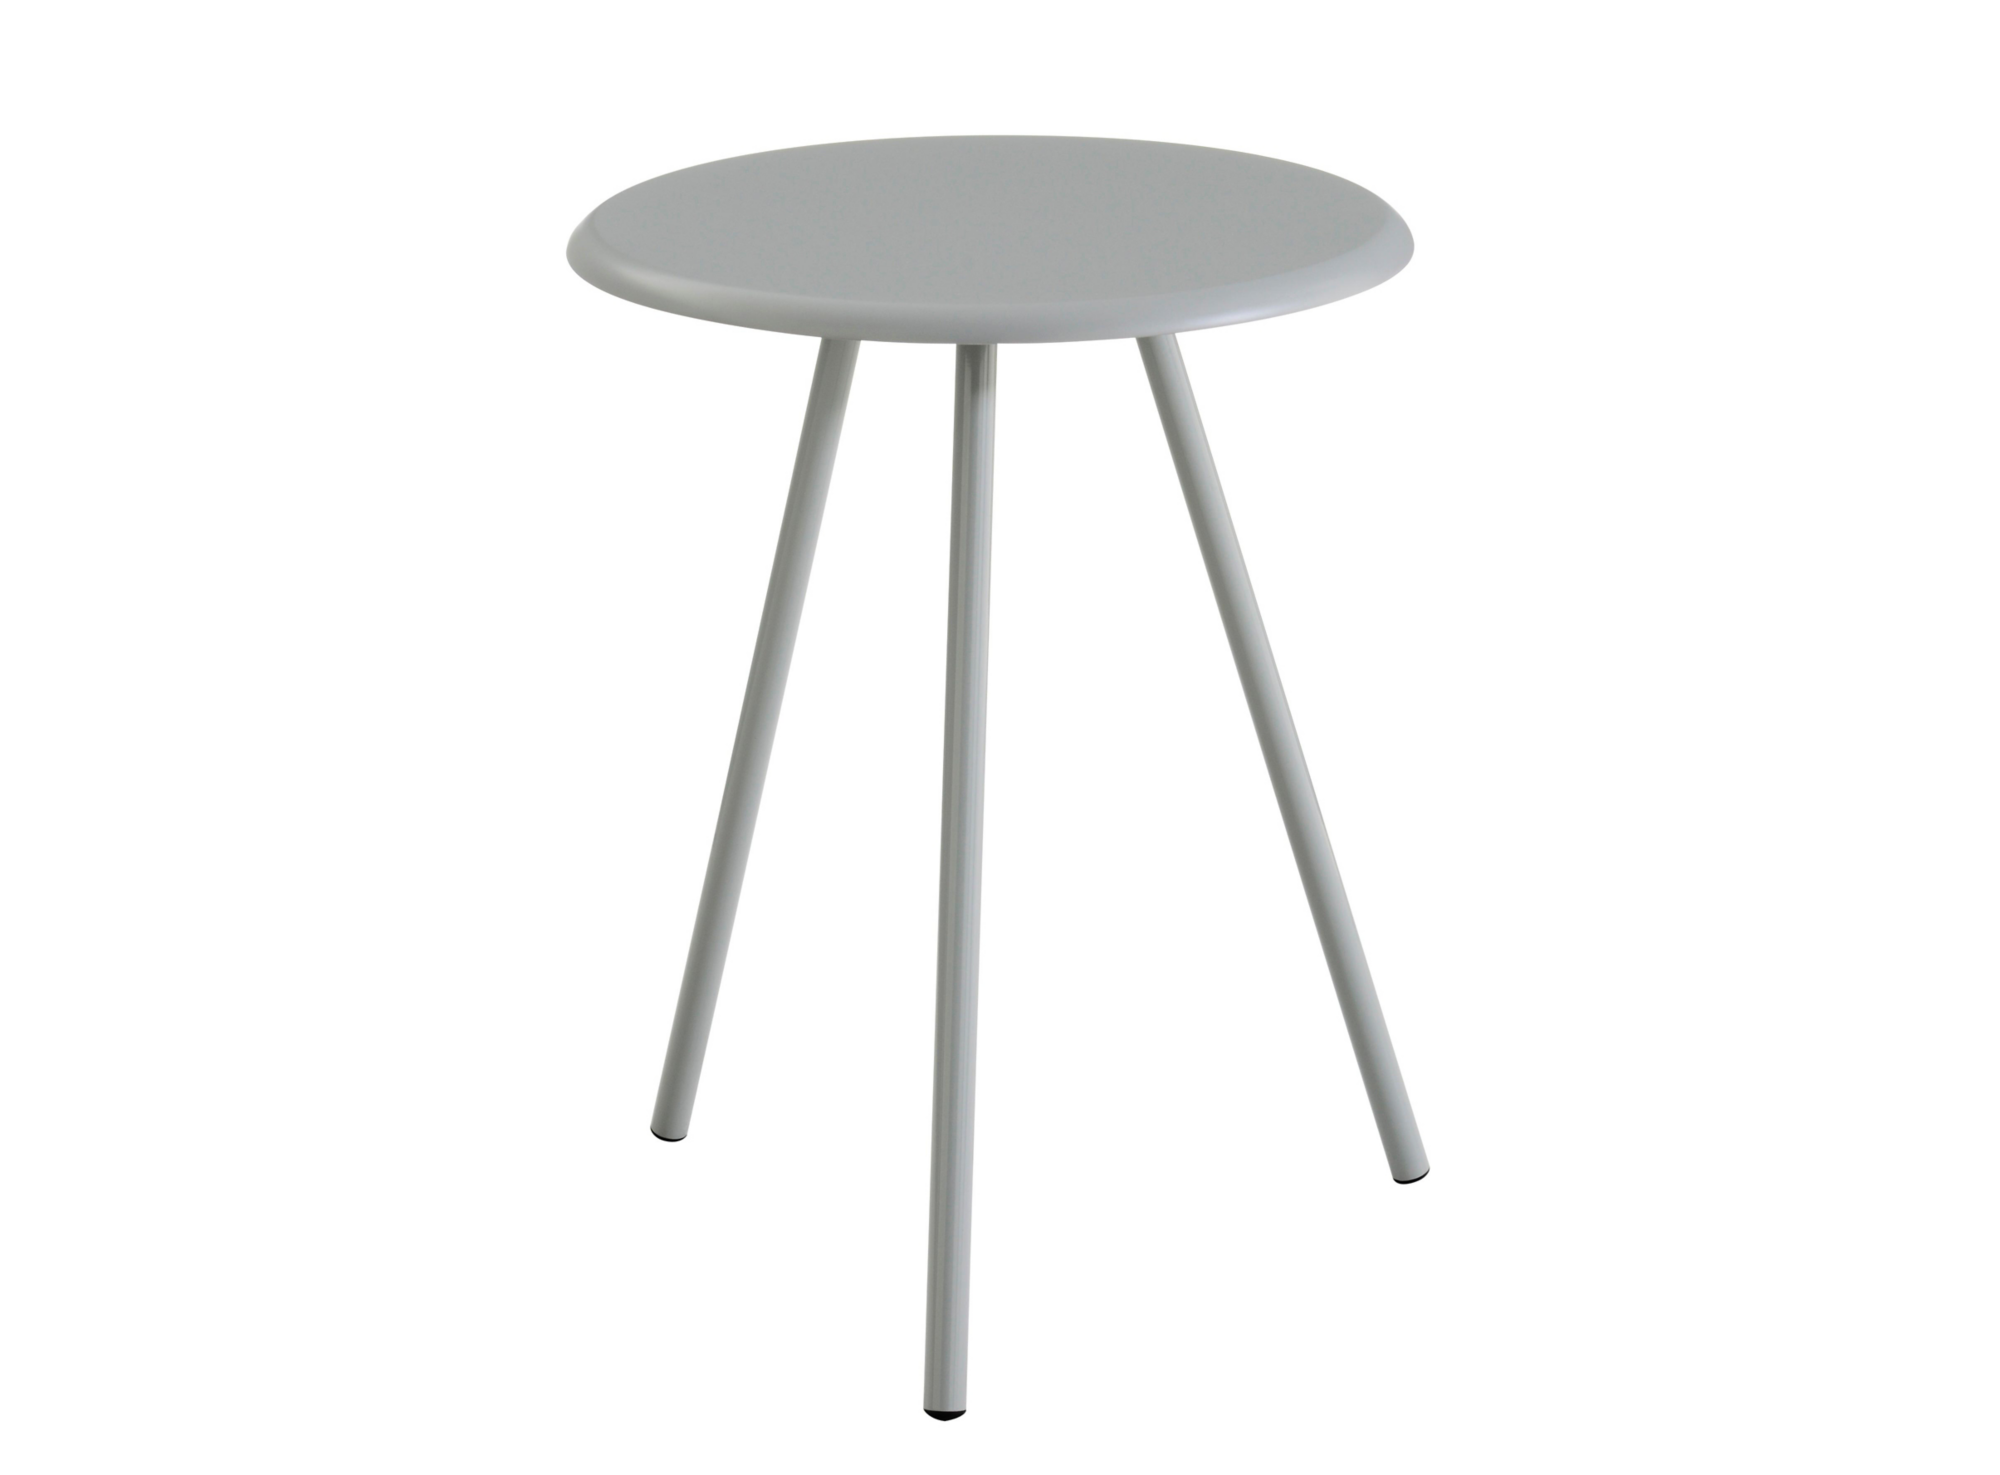 Table basse petit modele gris fly - Fly table basse ronde ...